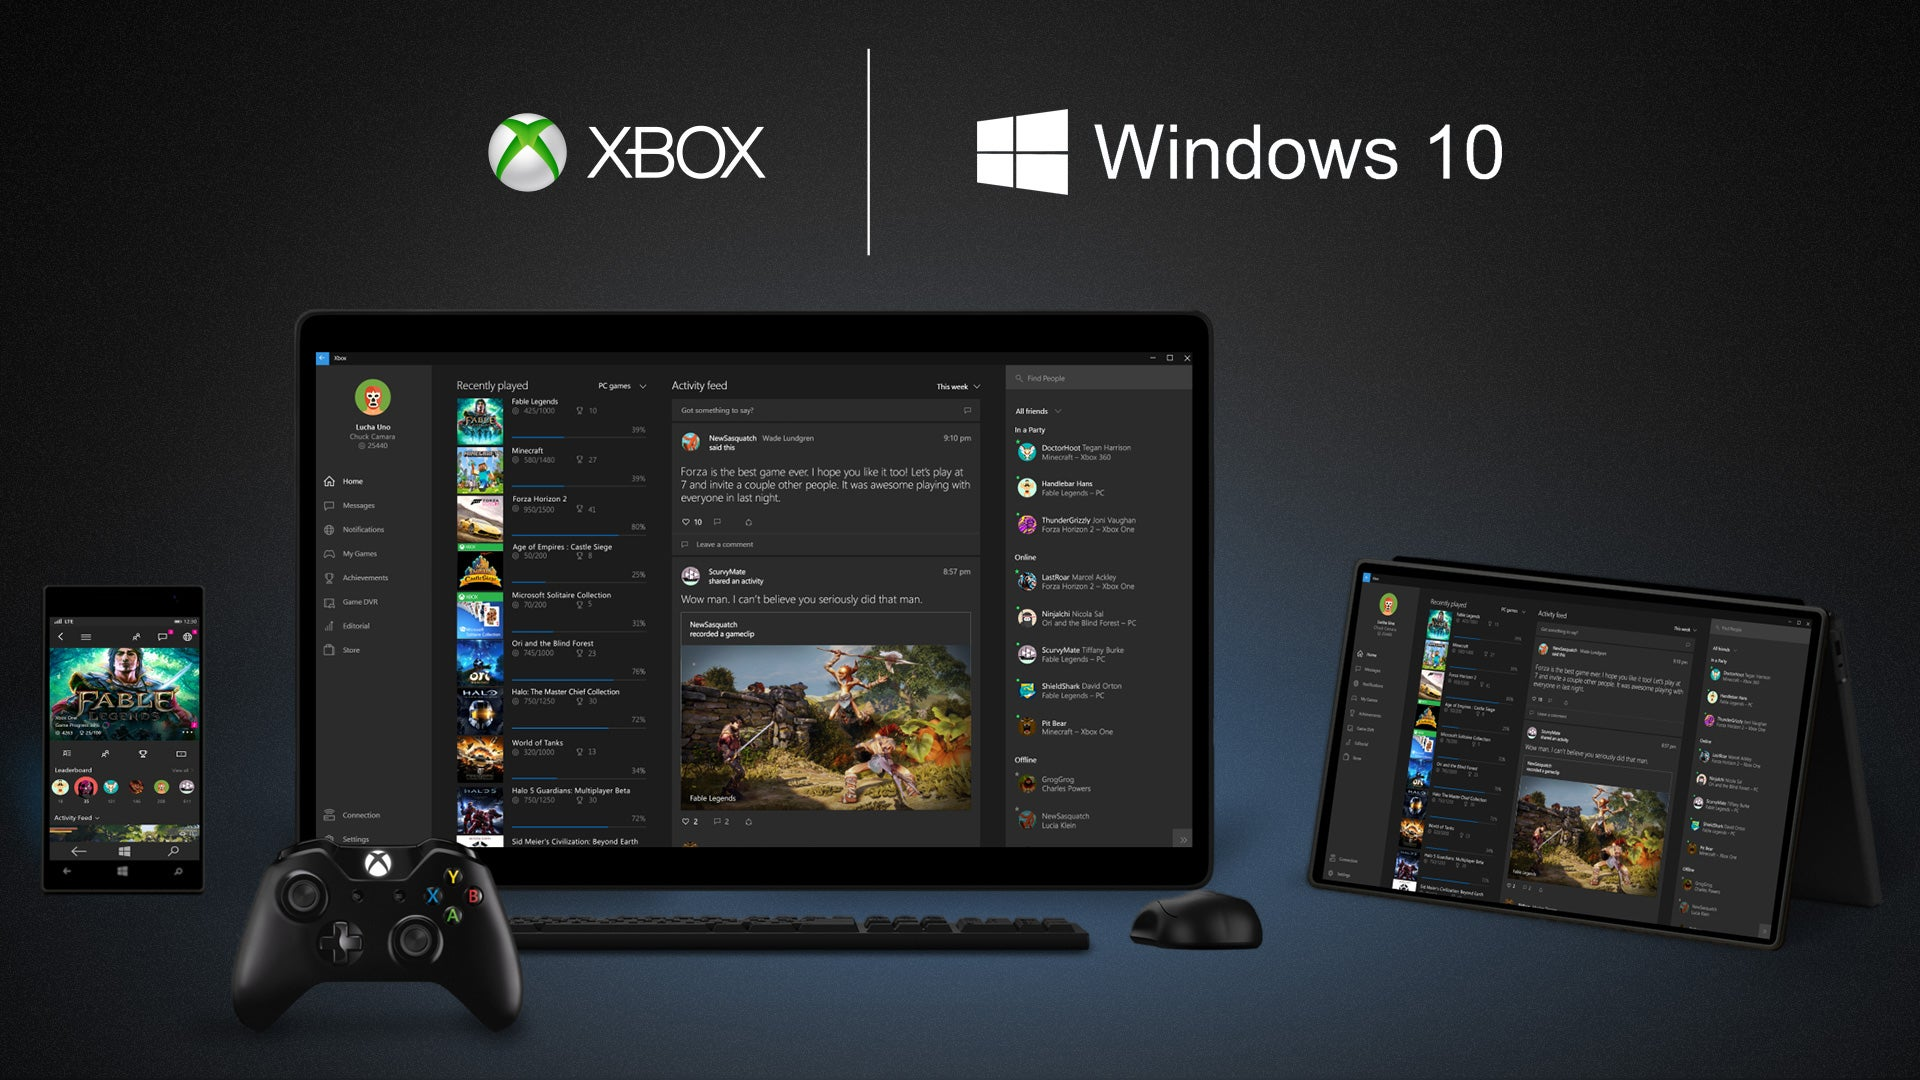 Xbox One streaming on Windows 10 has a hidden higher quality setting